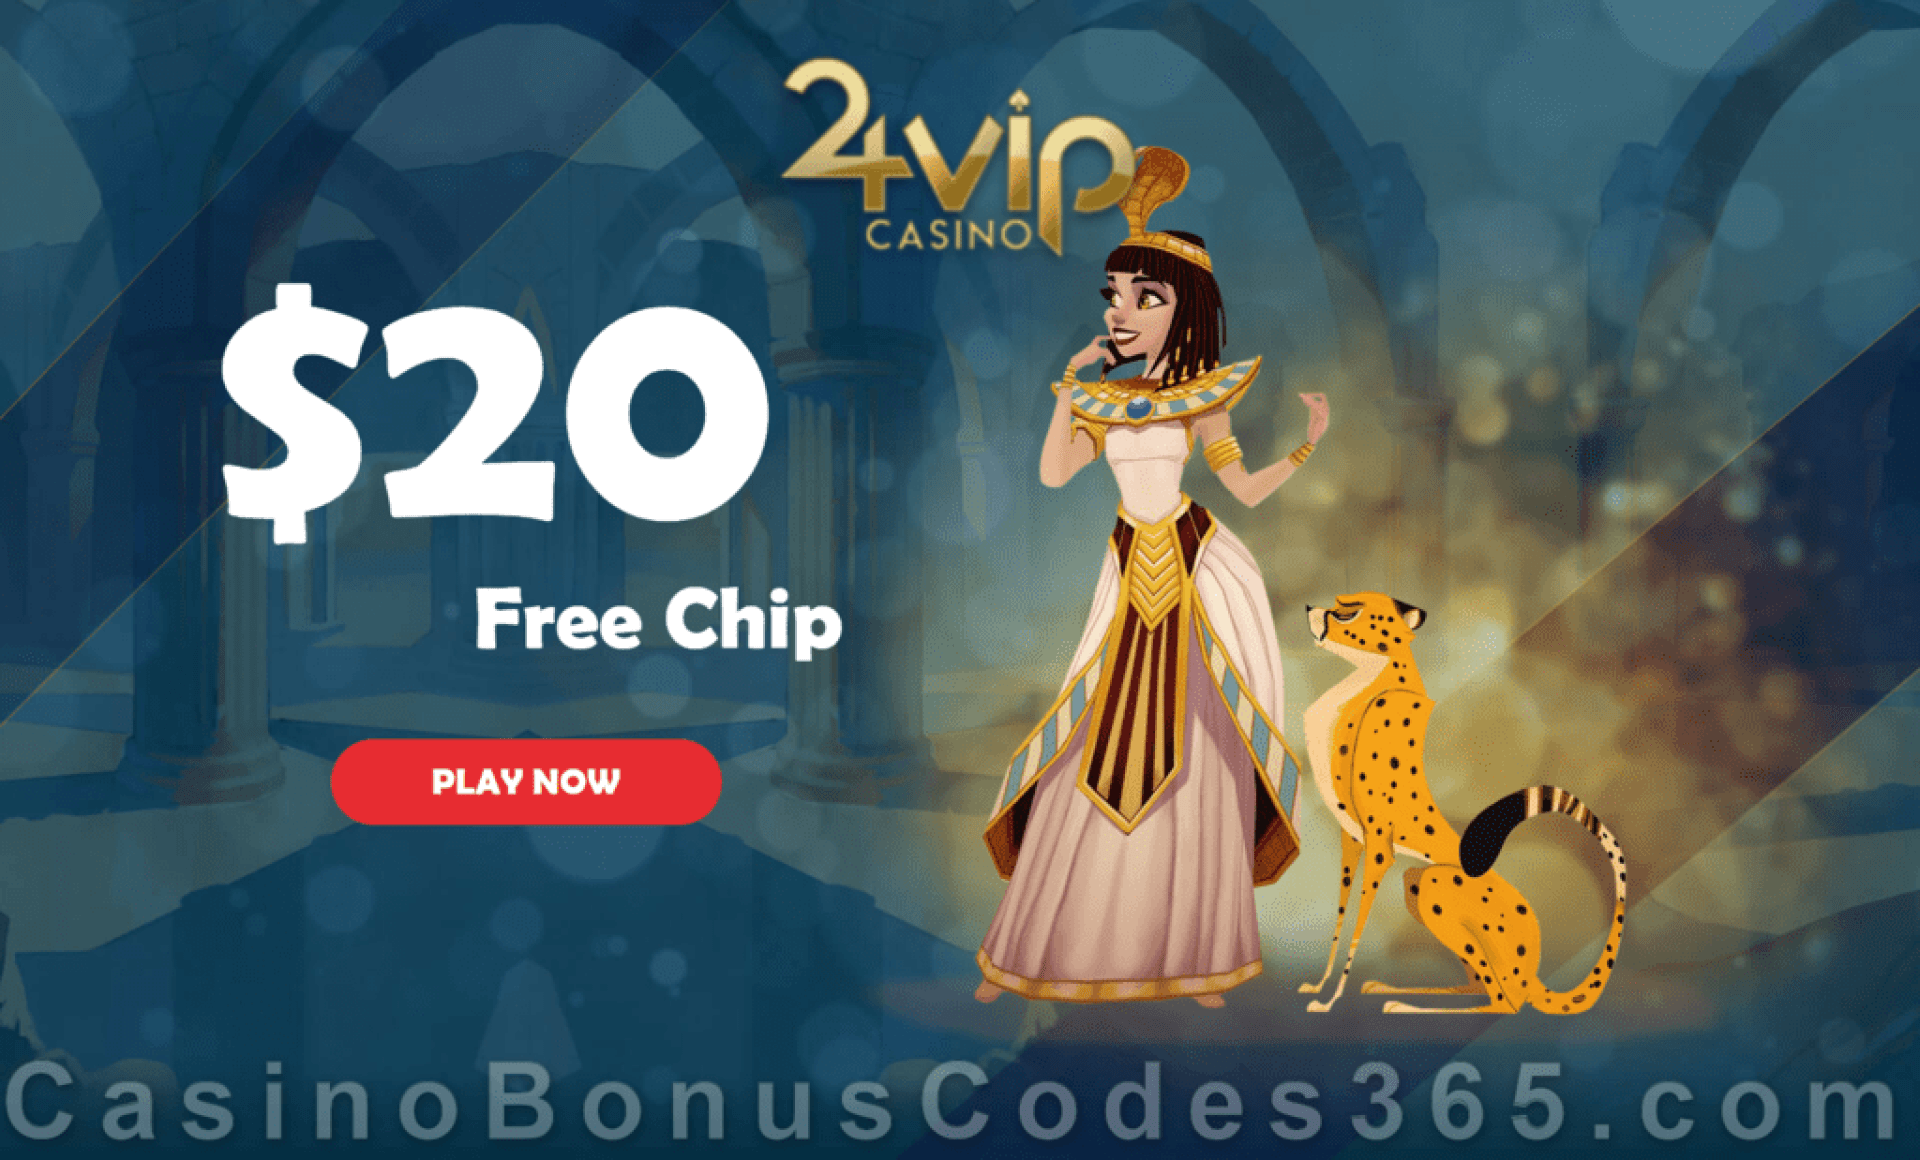 24VIP Casino $20 FREE Chips Special No Deposit Promo